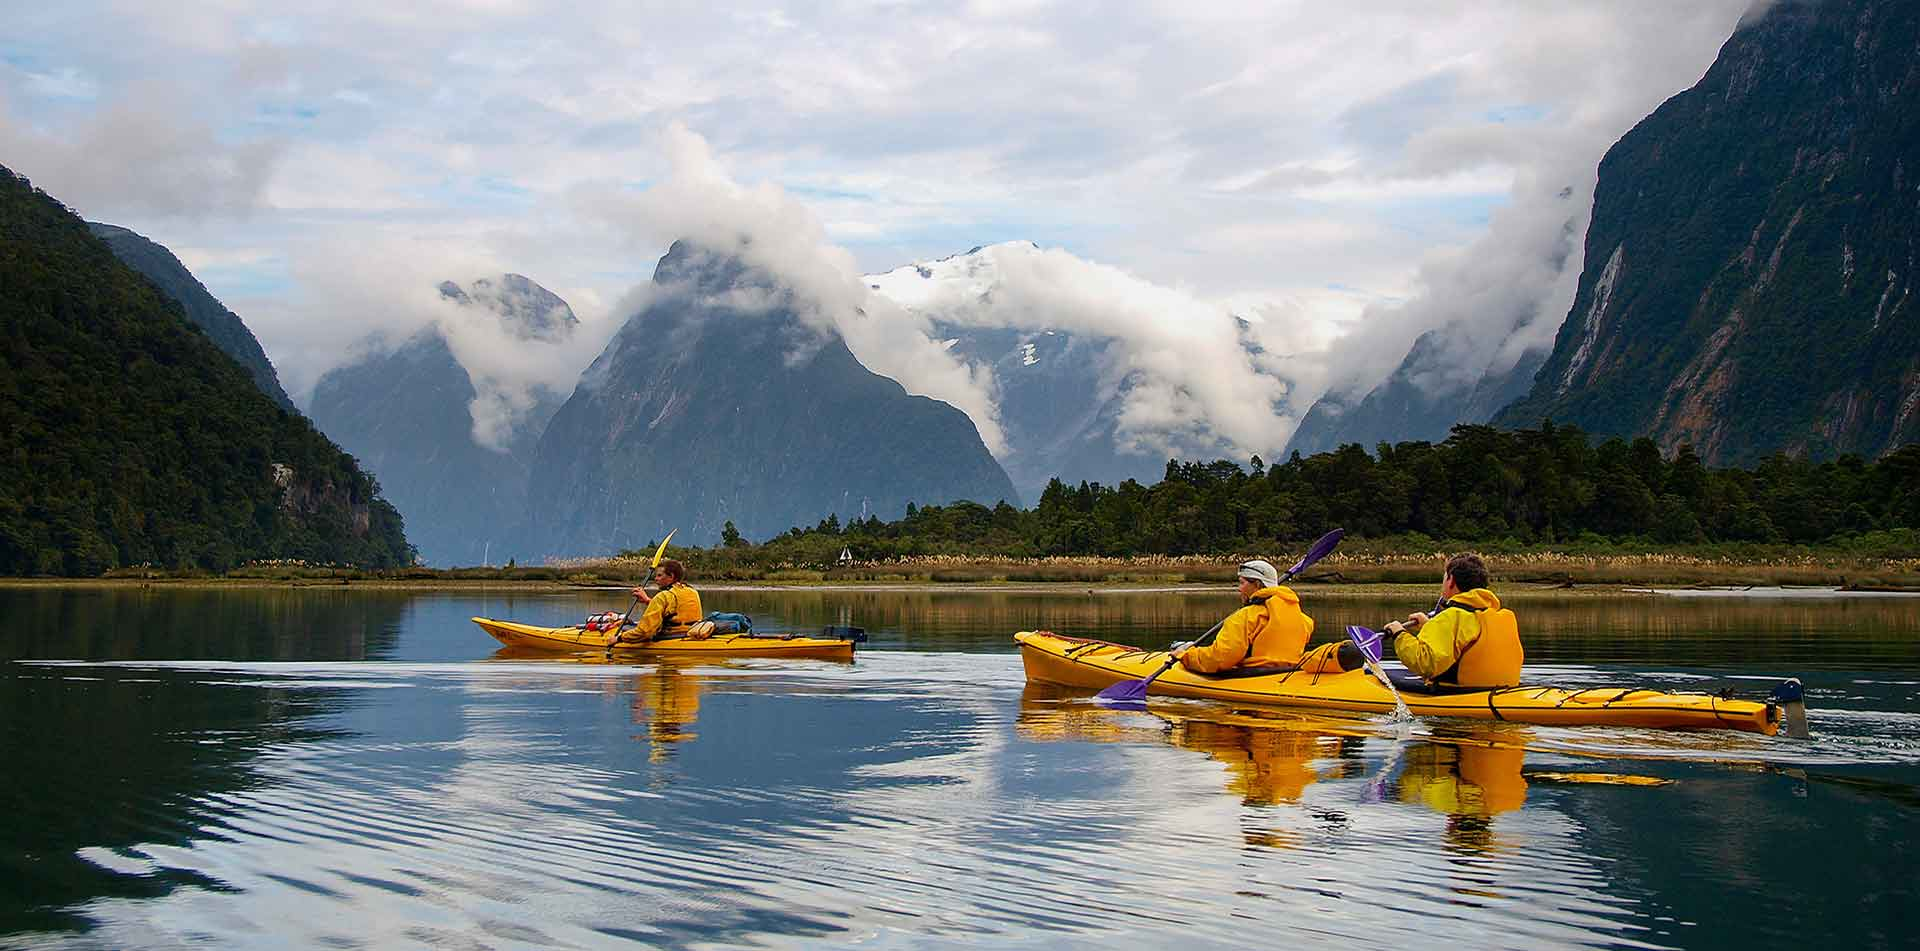 Oceania New Zealand South Island people kayaking in Milford Sound - luxury vacation destinations